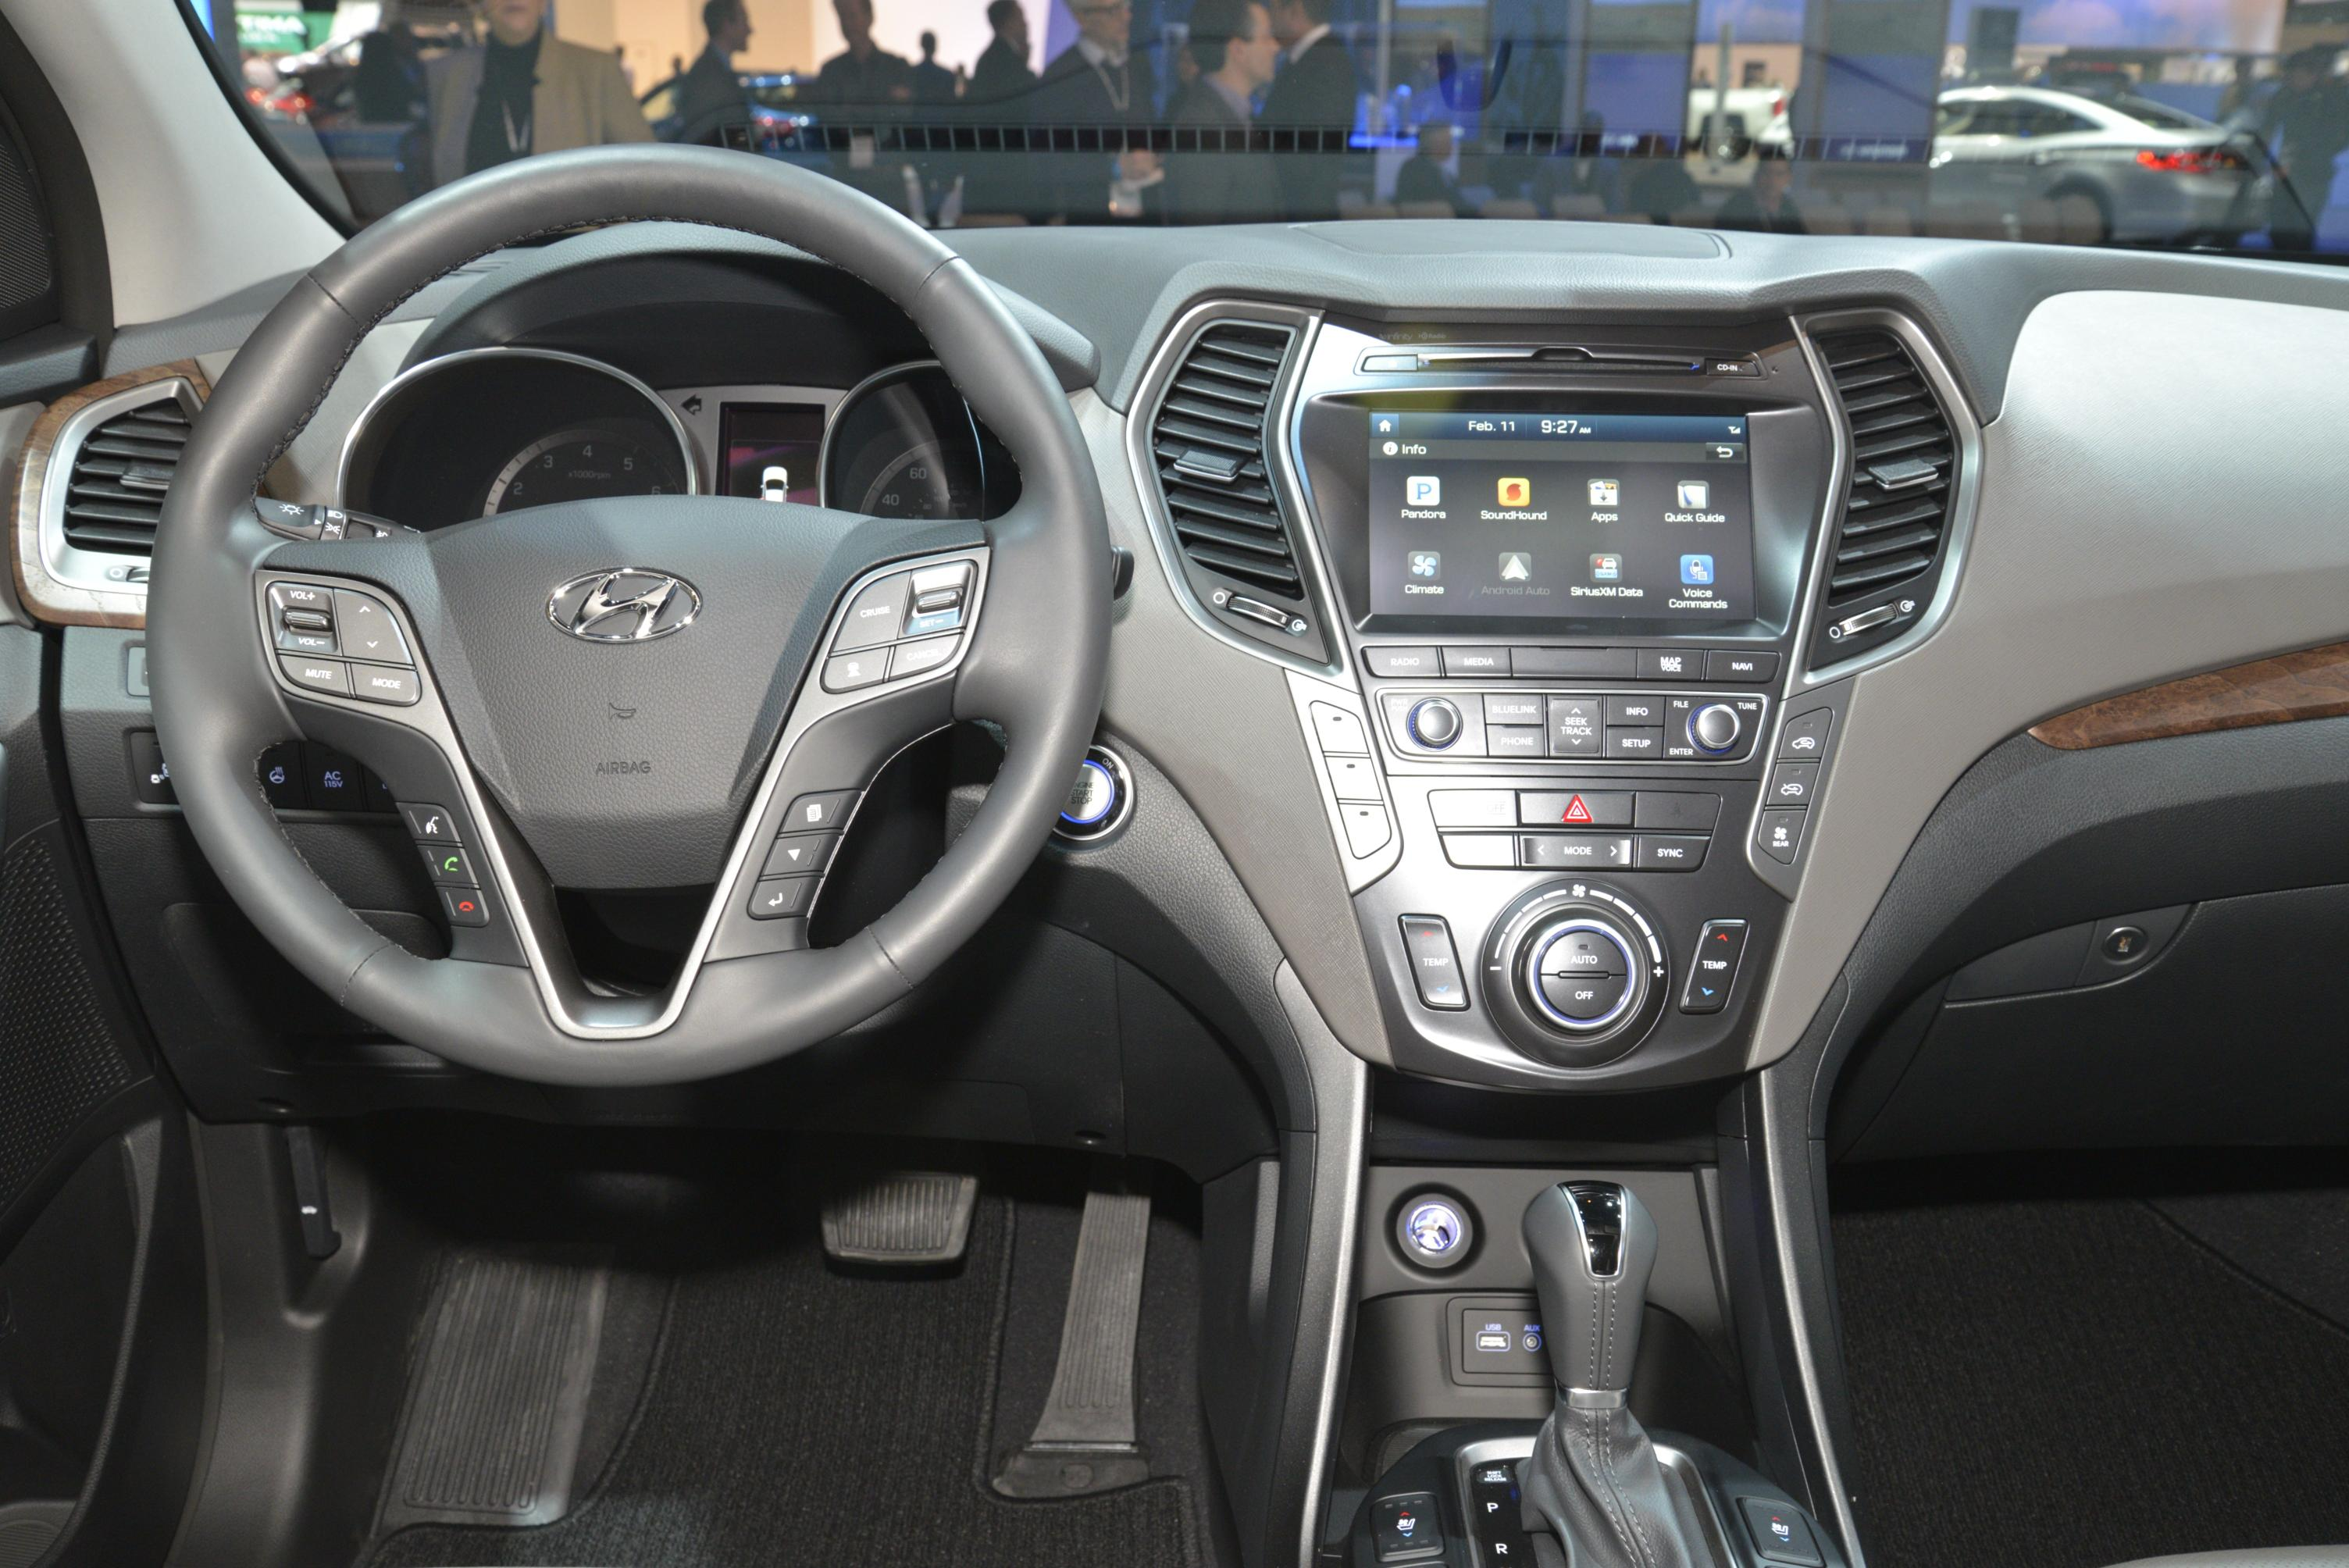 hyundai fe santa interior cruz sport concept facelift thinks suv chicago got dashboard specs crossover remote generation system link autoevolution